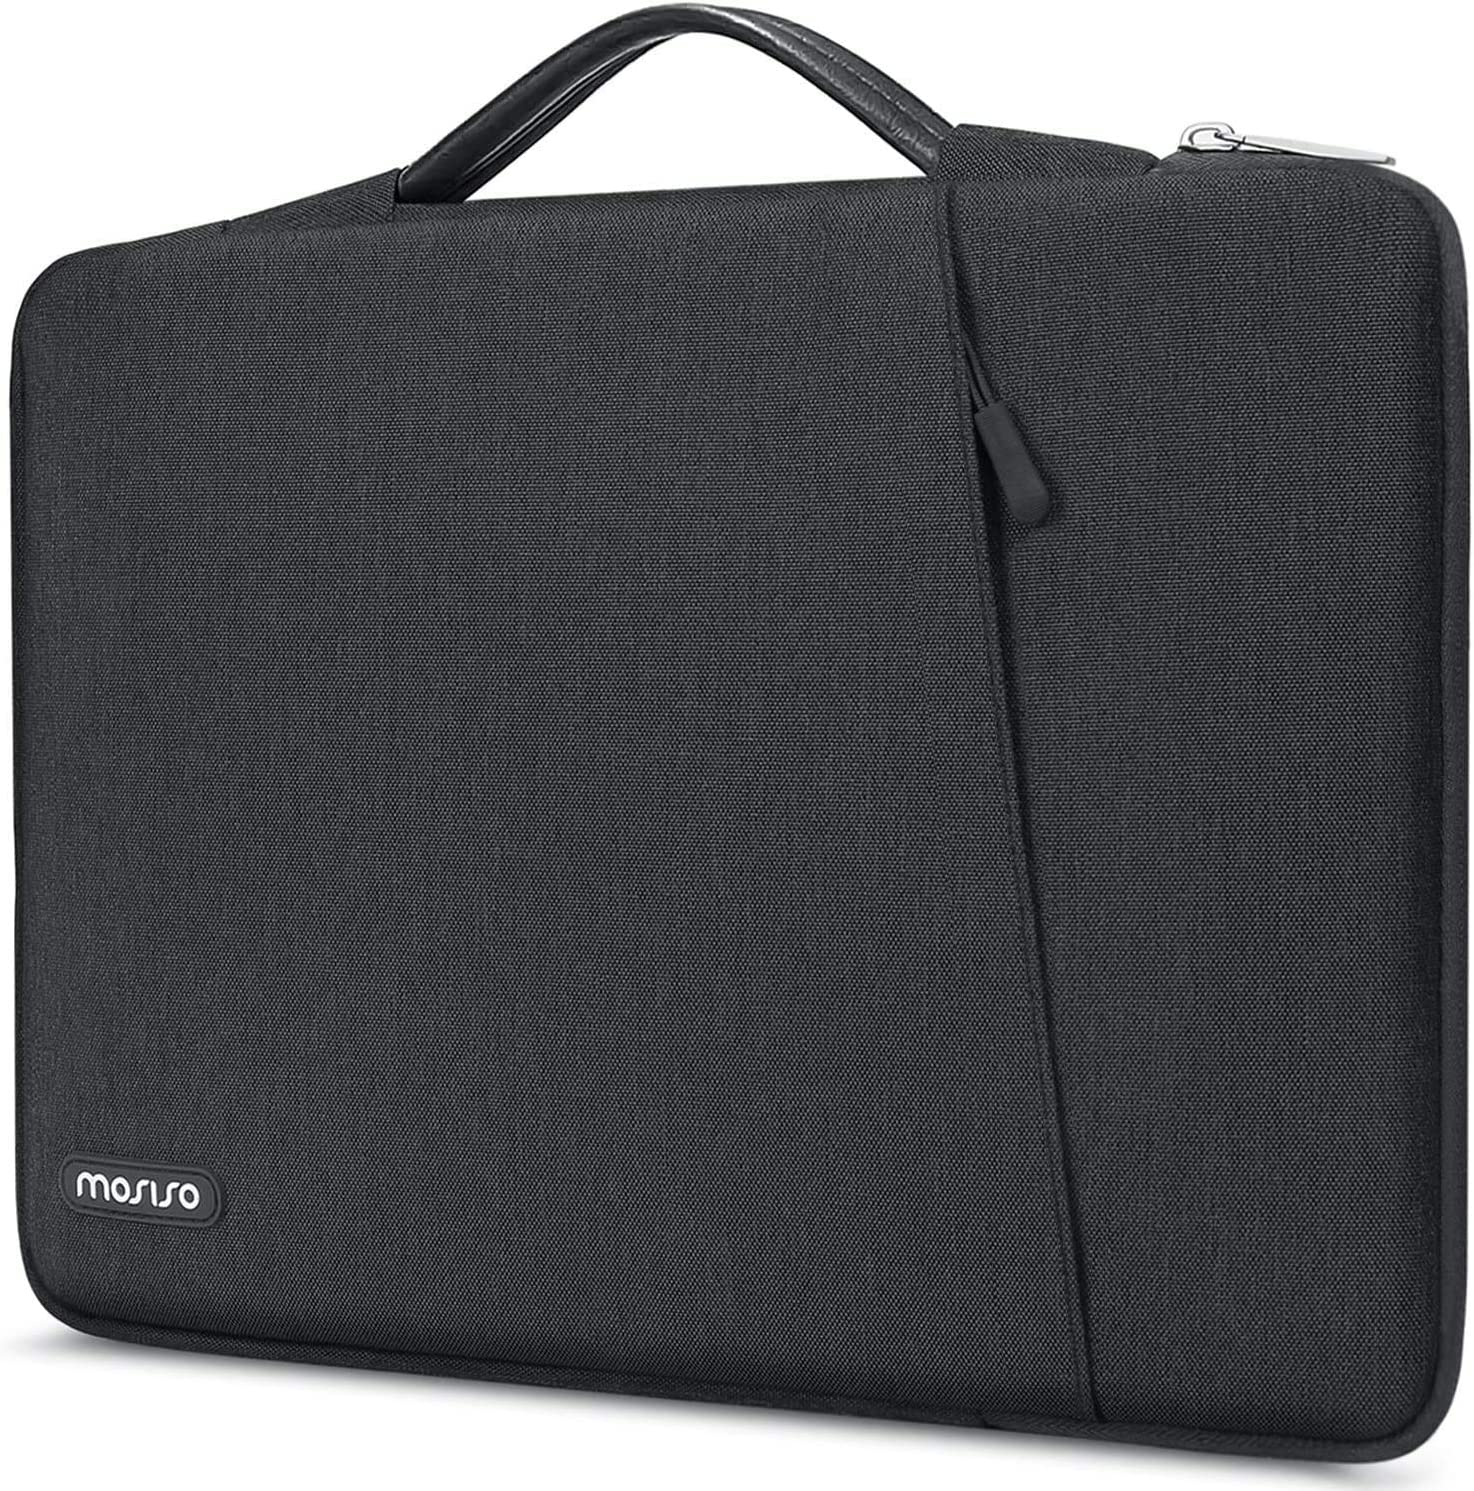 MOSISO 360 Protective Laptop Sleeve Compatible with 13-13.3 inch MacBook Pro, MacBook Air, Notebook Computer, Shockproof Carrying Case Cover Handbag,Polyester Vertical Bag with Bevel Pocket,Space Gray